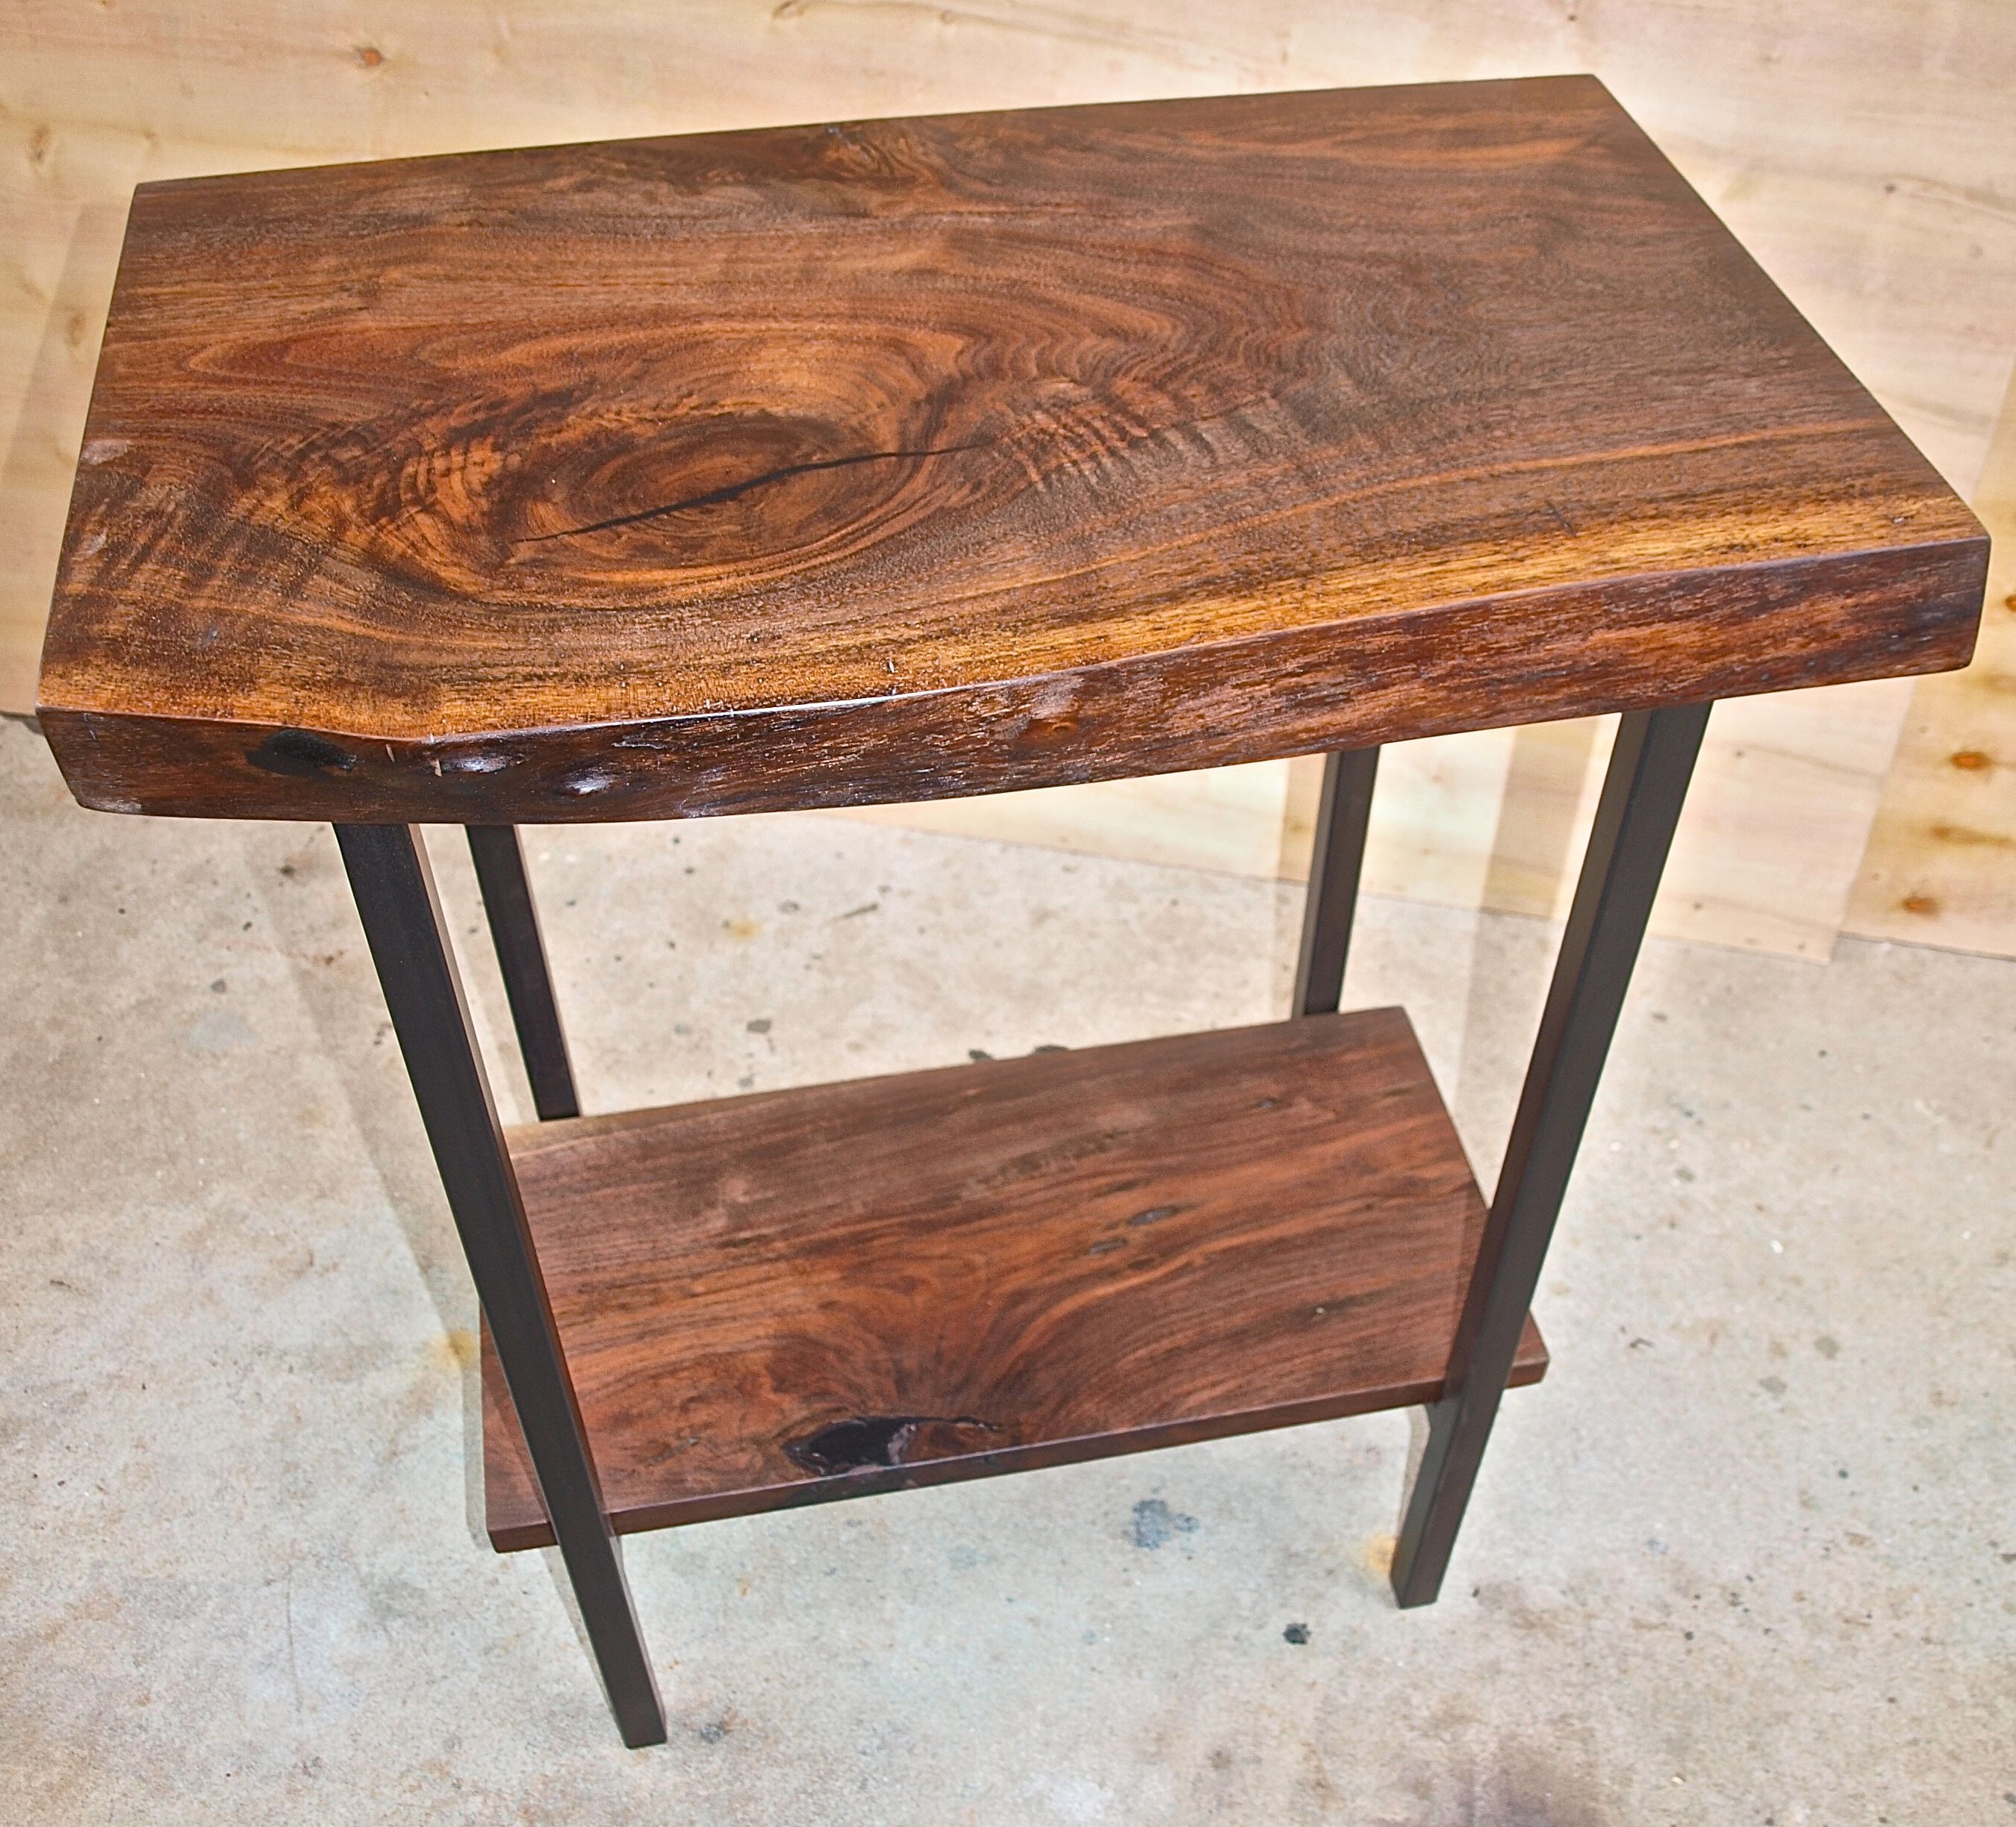 Custom Live Edge Walnut Entry Table By WITNESS TREE